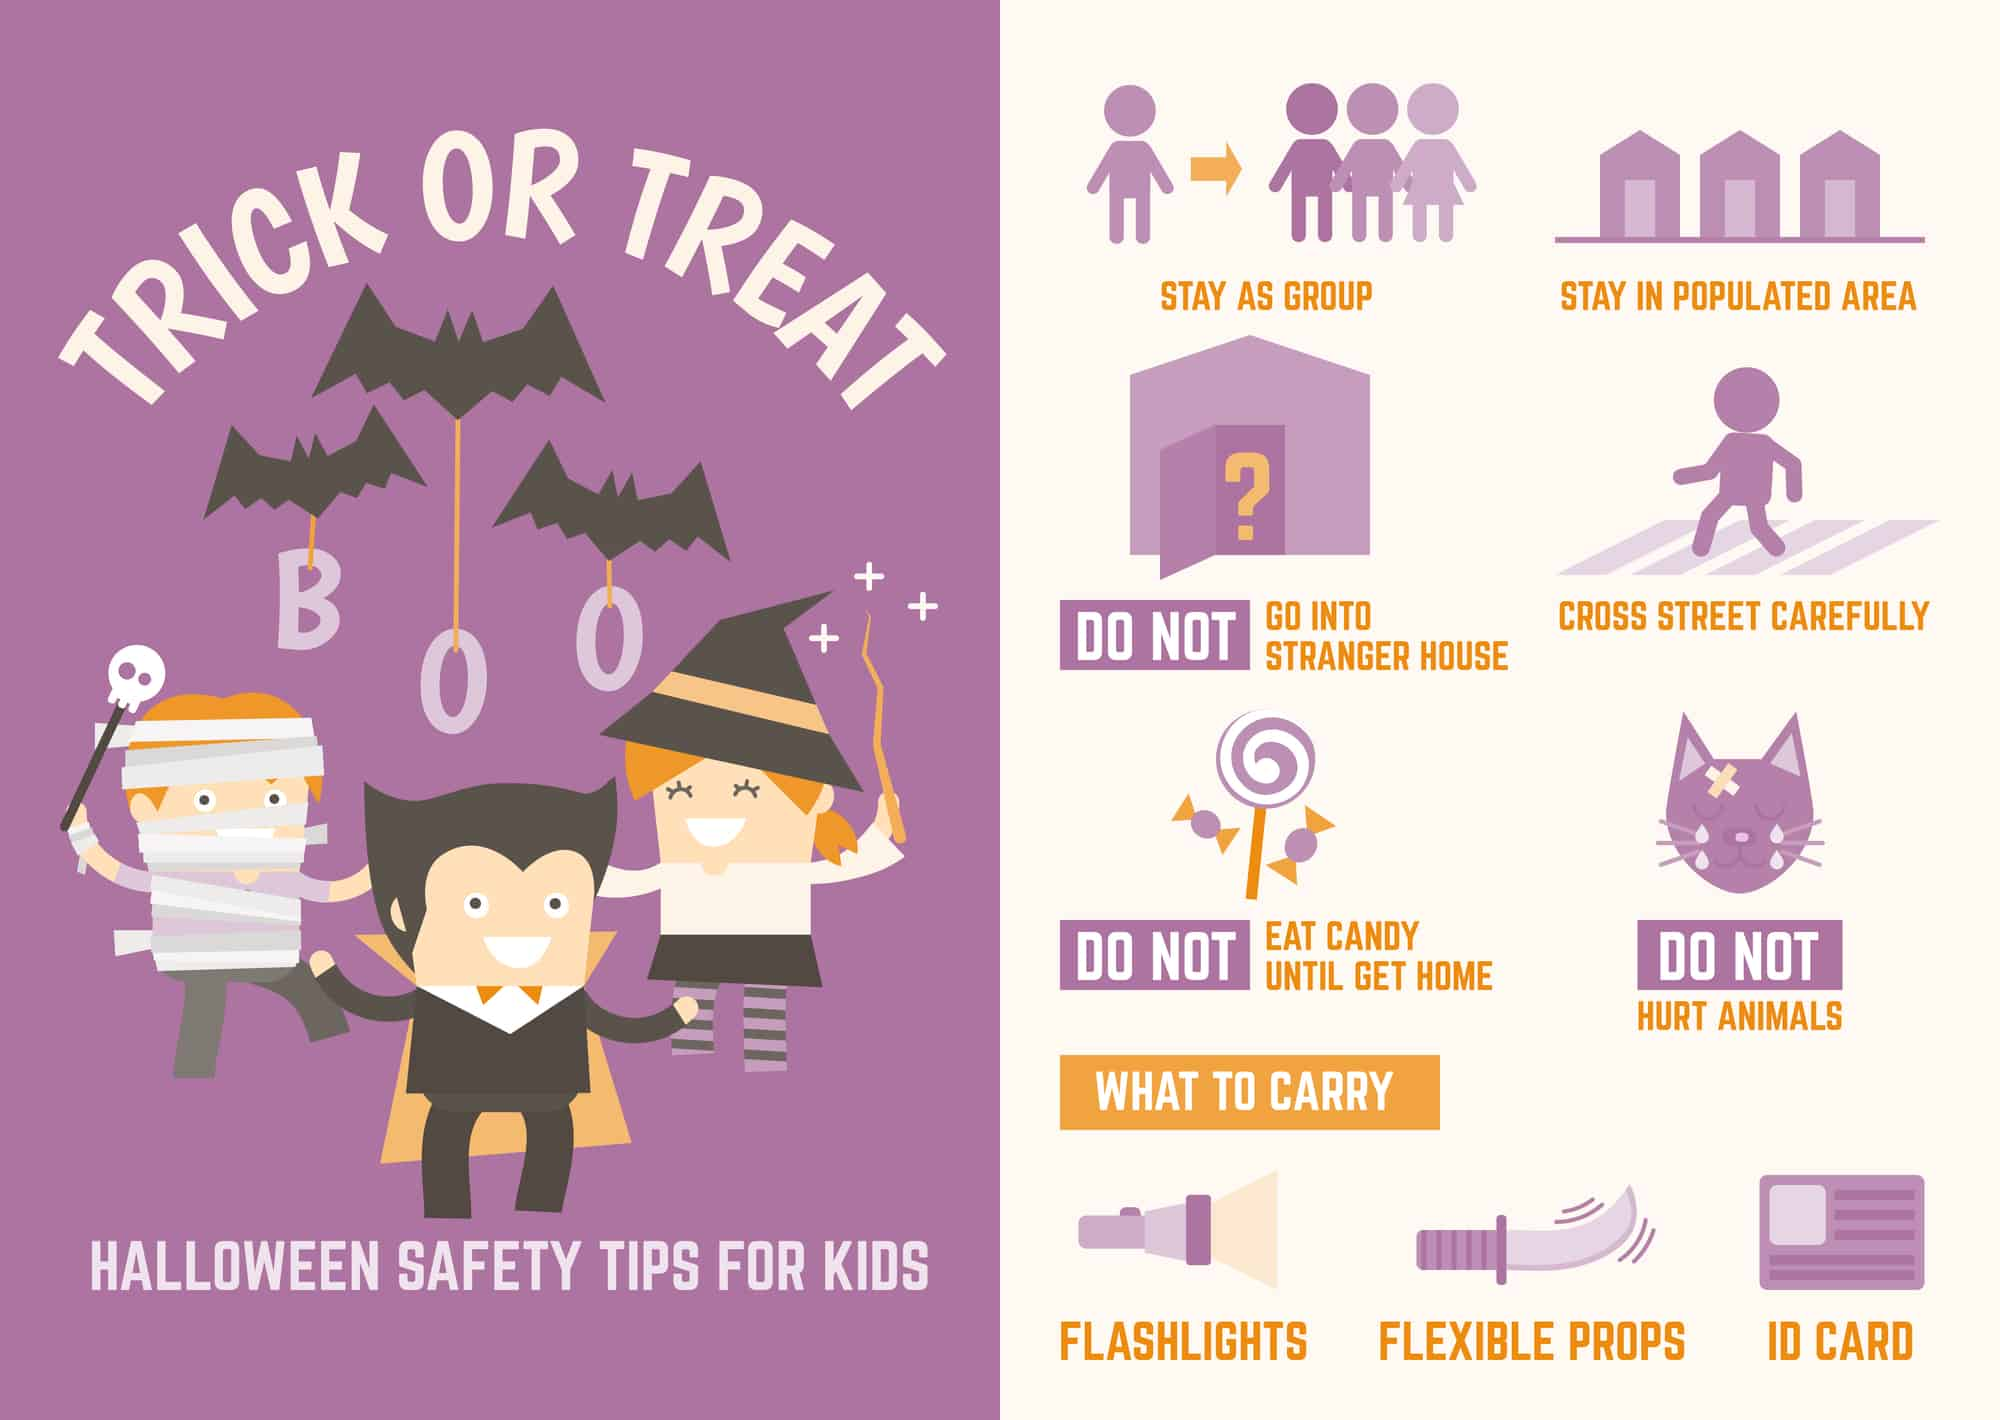 29 Halloween Safety Tips for Kids - Trick or Treating